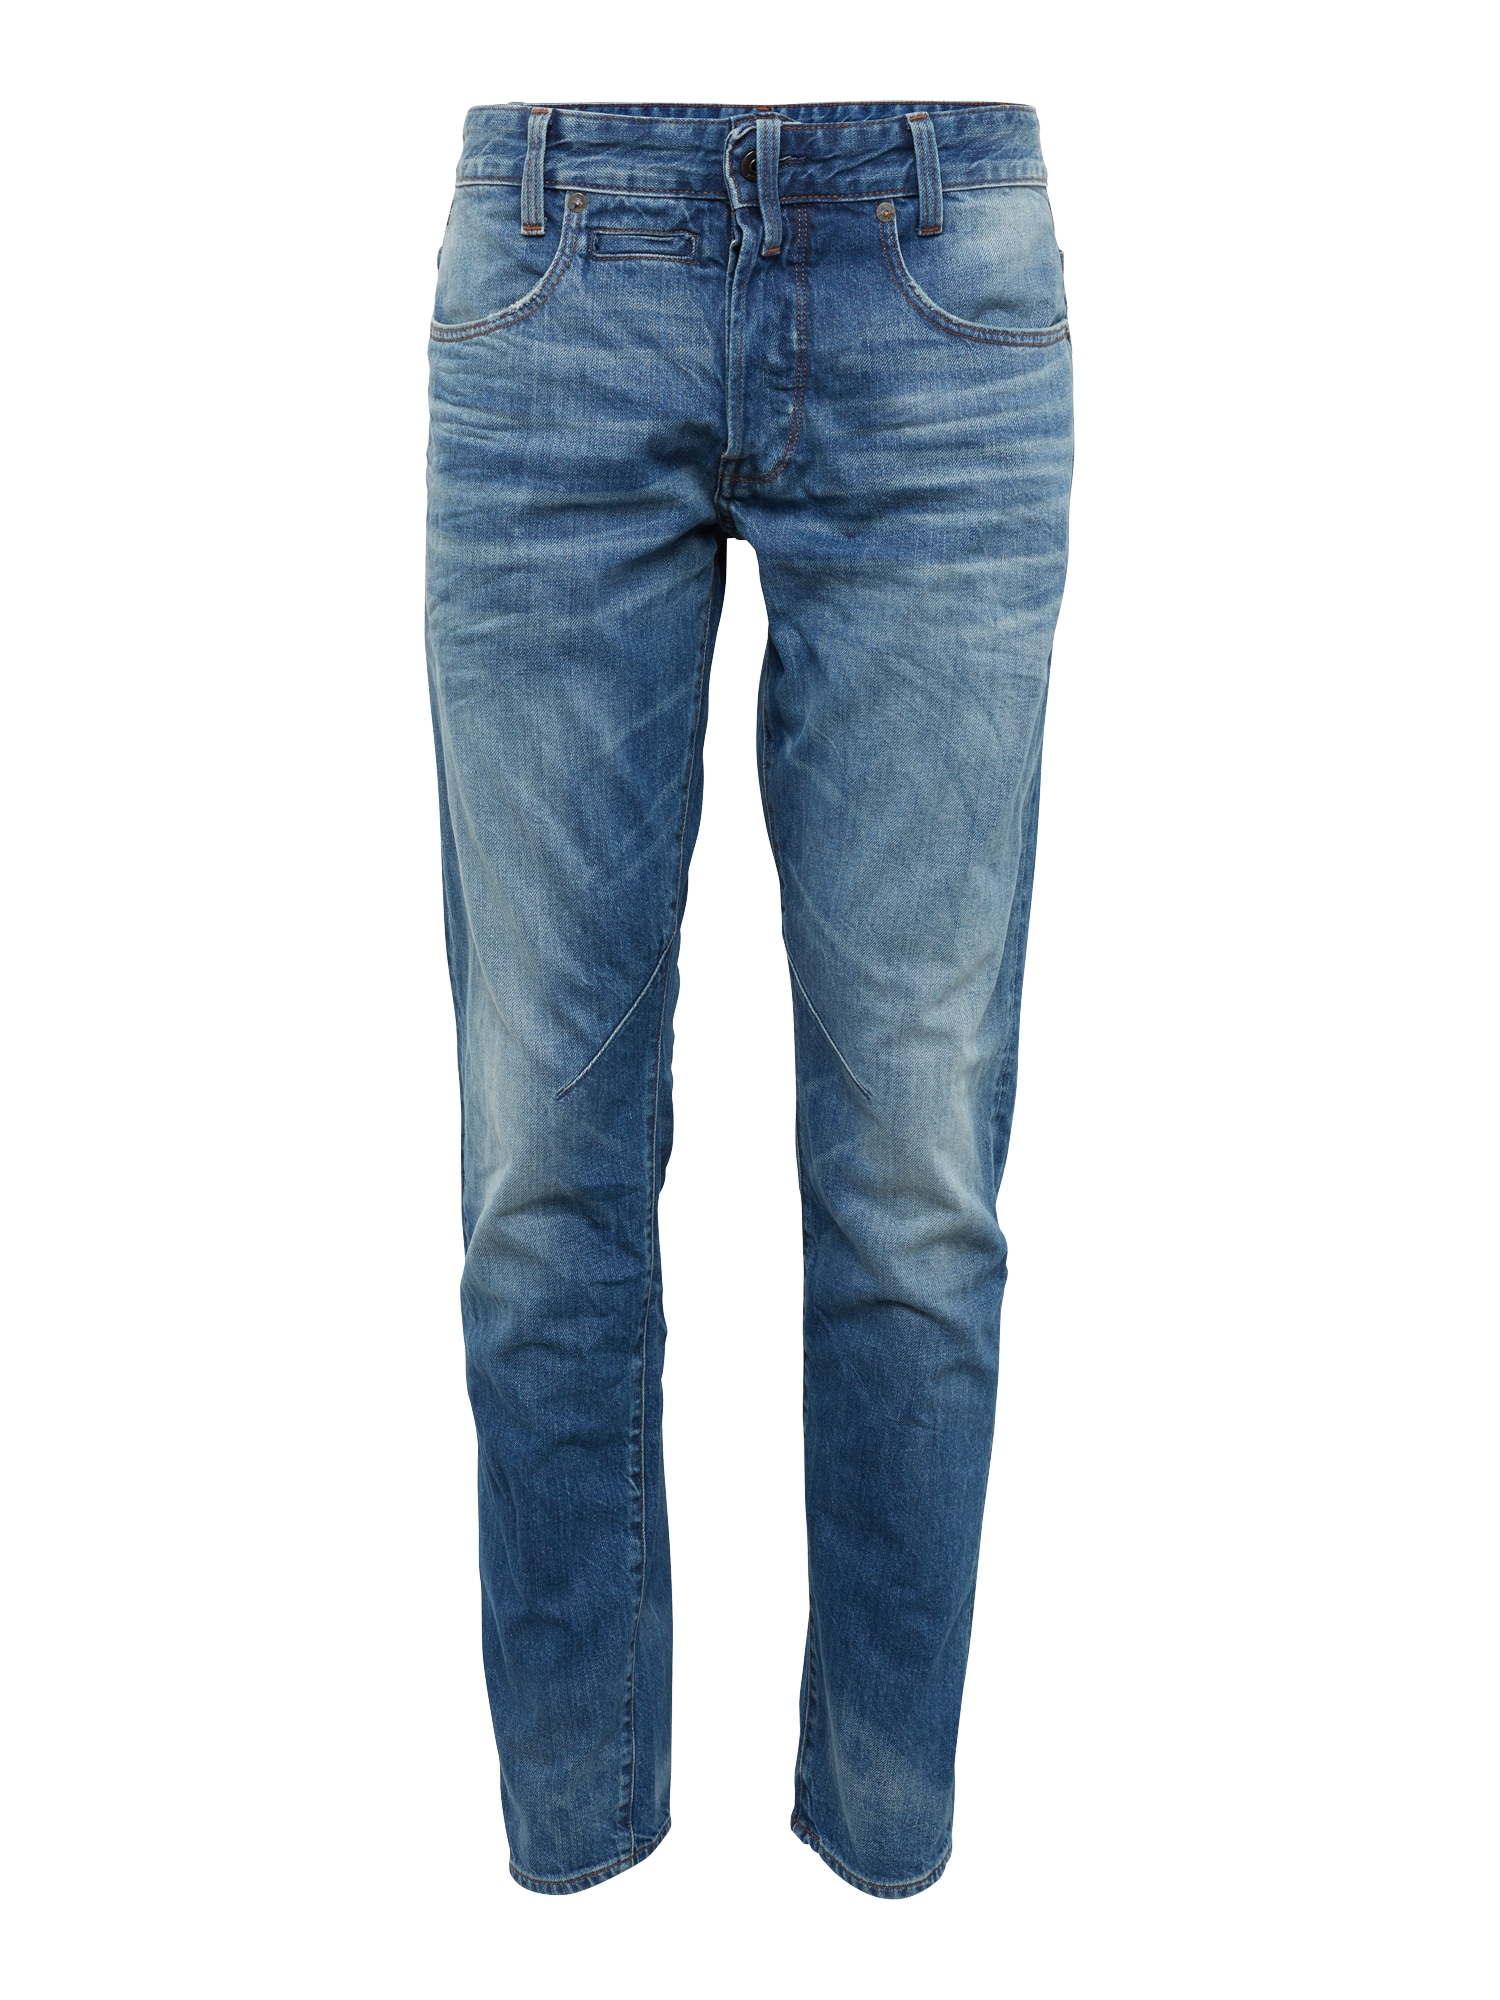 G-STAR RAW Heren Jeans D-Staq 5-pkt Tapered blue denim